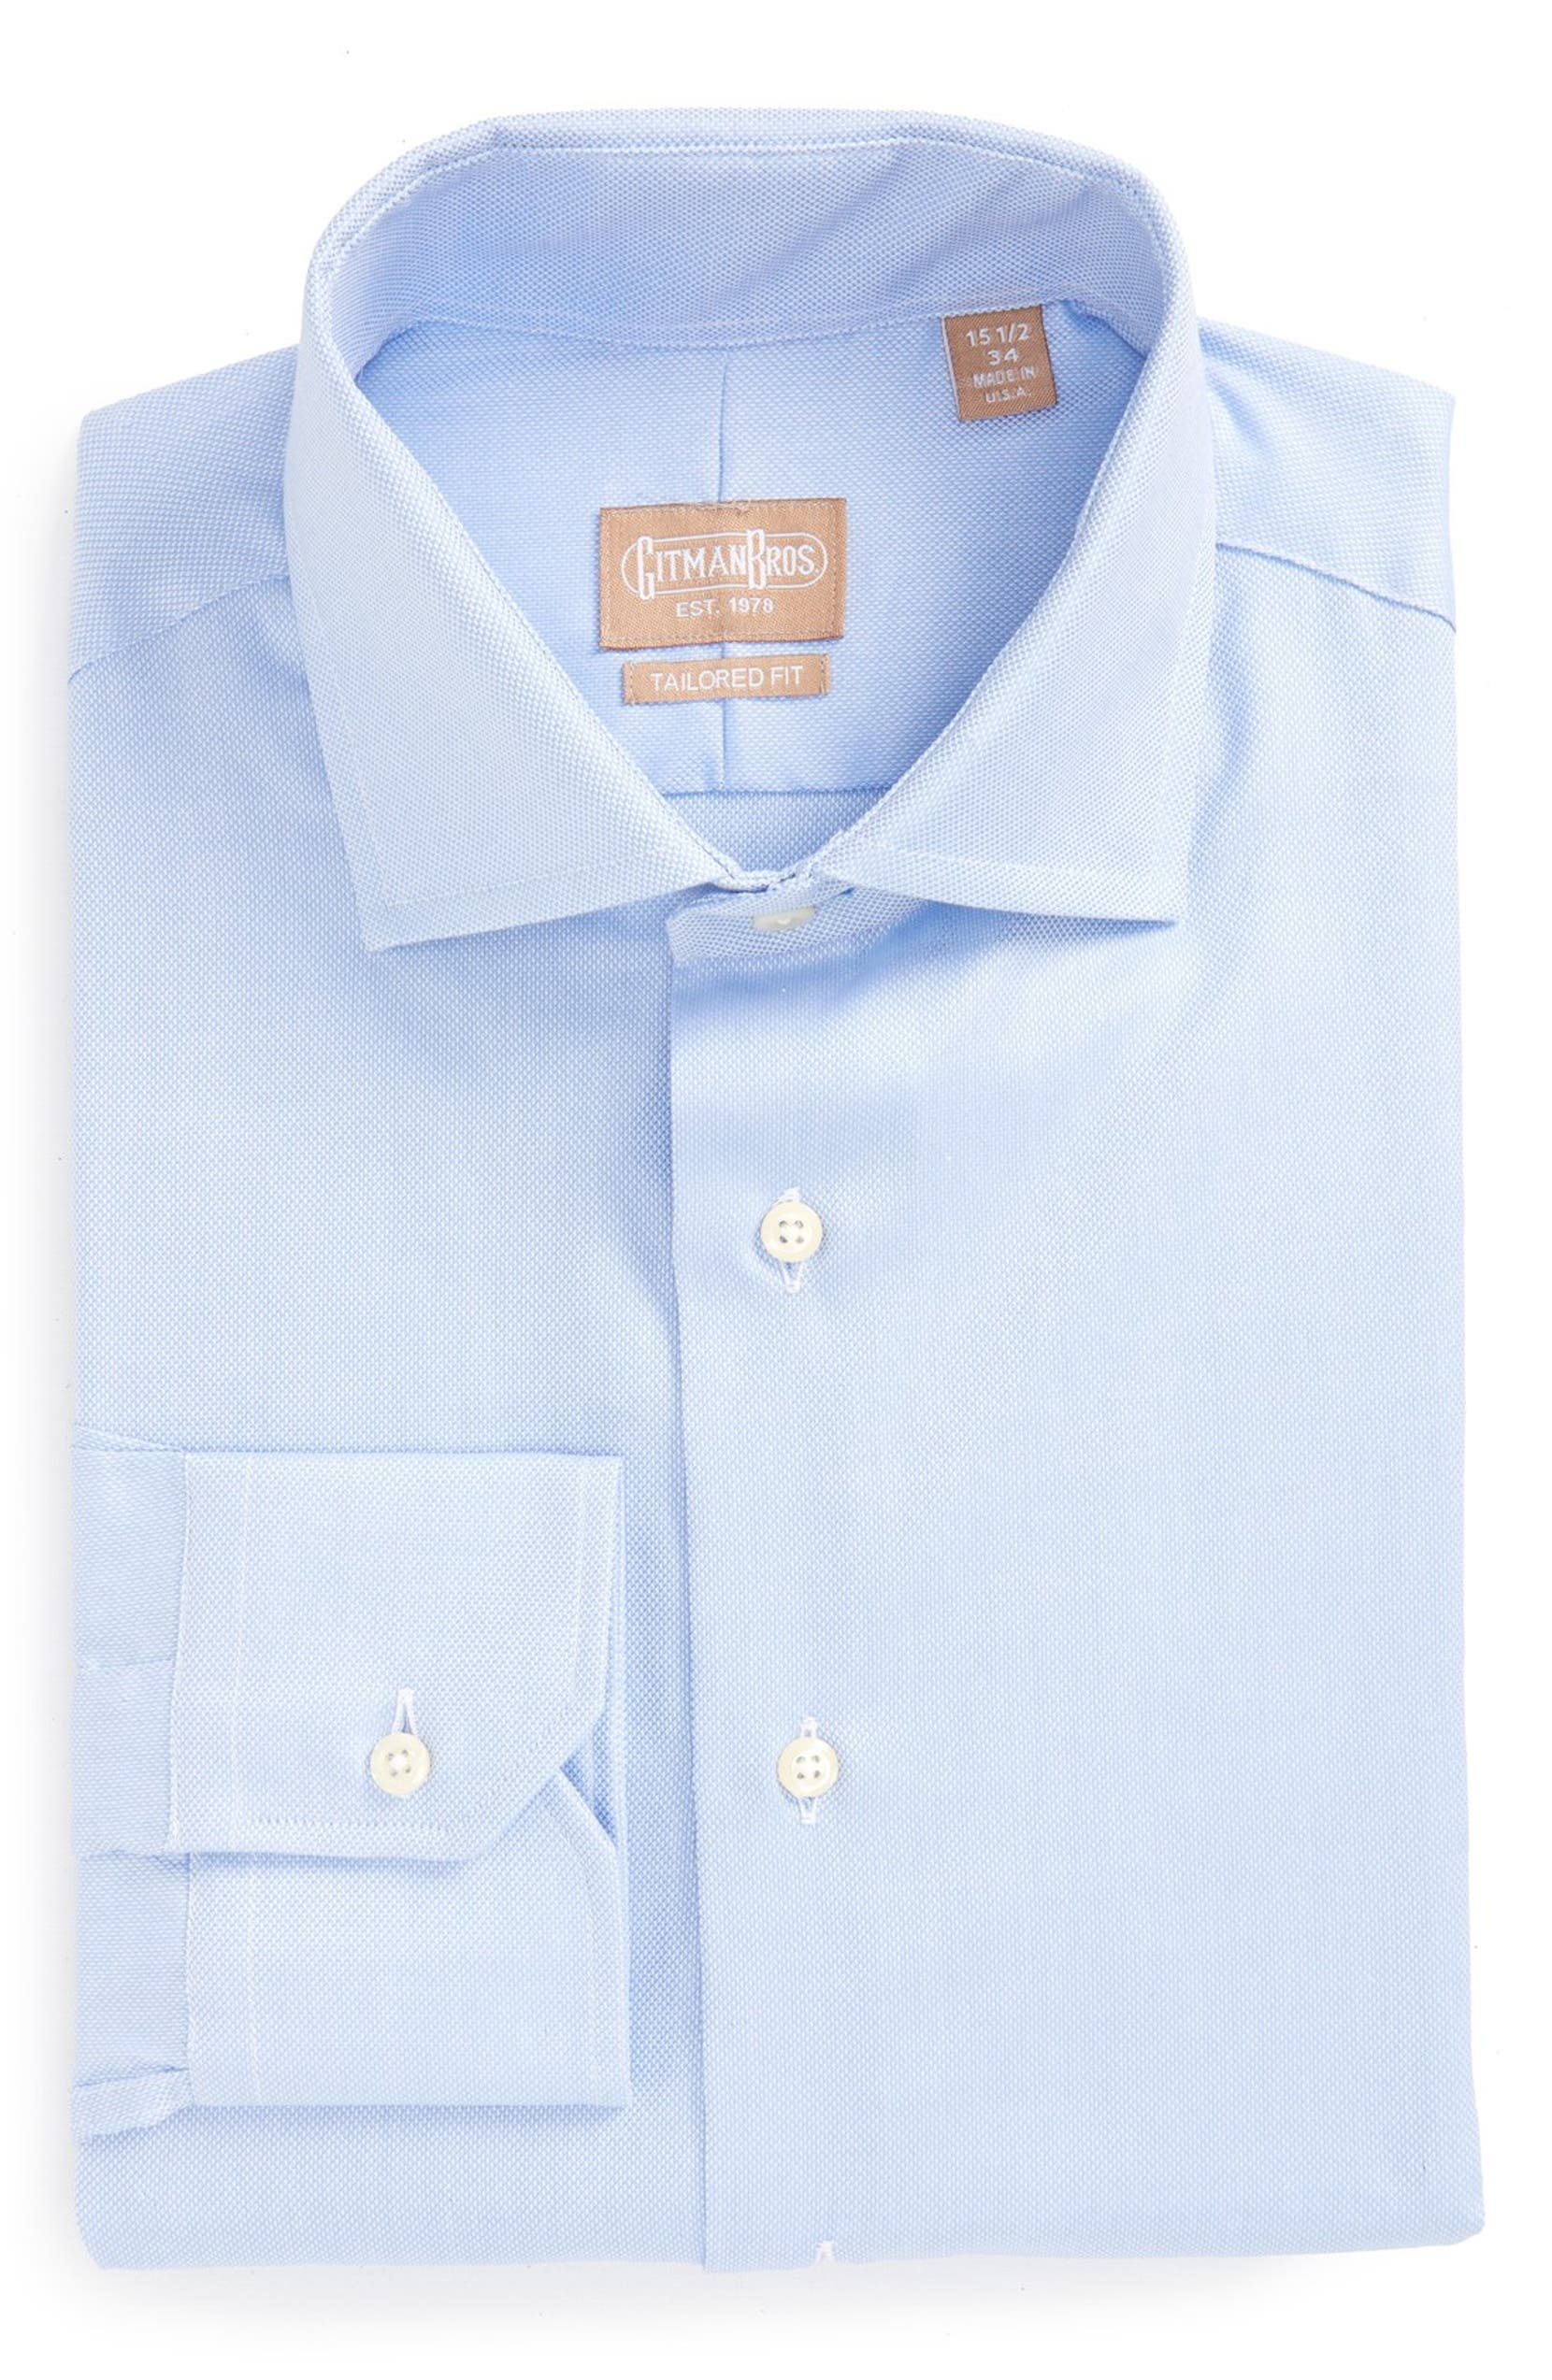 Gitman Royal Oxford Tailored Fit Dress Shirt Nordstrom